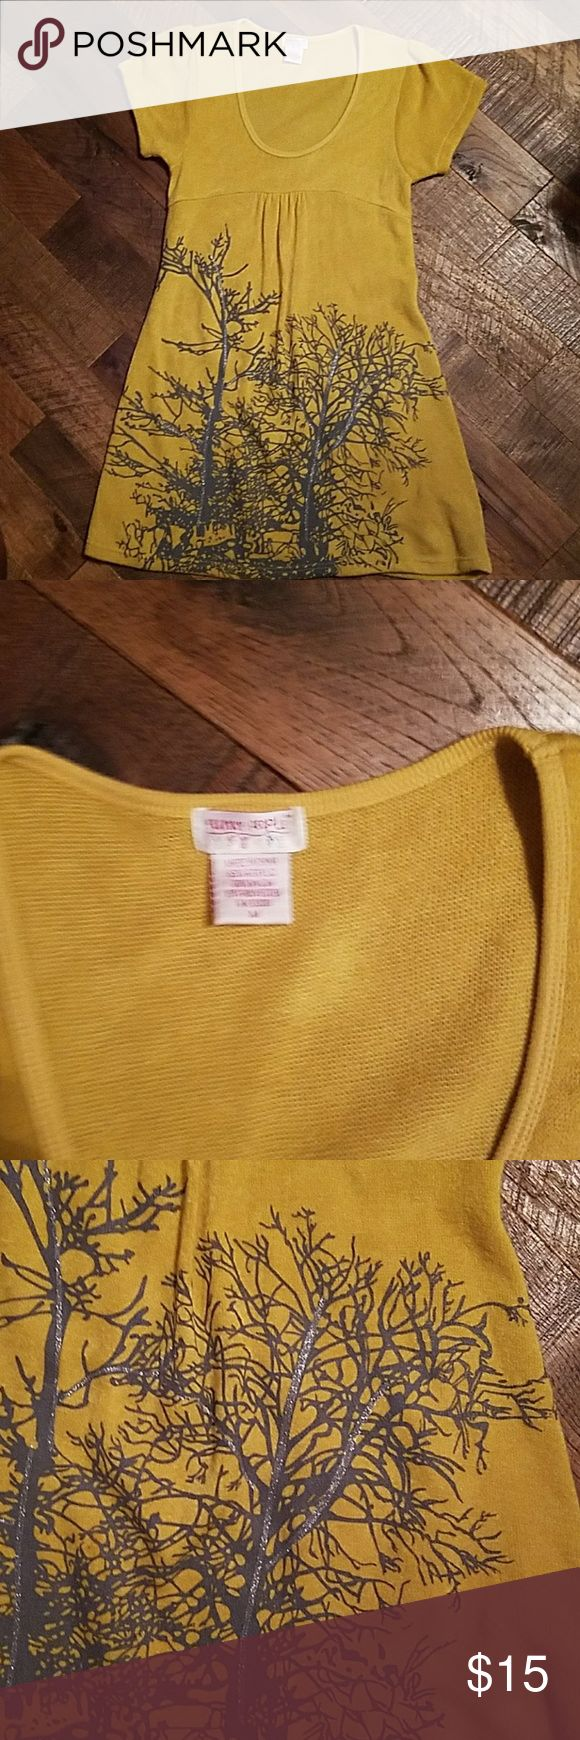 Yellow sweater dress. Funky people. Funky people dress.  Fun style. Great condition, no issues.  Very soft, light knit dress.  Cool enough for Maryland summers.   Screen print style design with silver metallic tree drawing.  This dress has a very organic nature, modern hippie style. funky people Dresses Midi